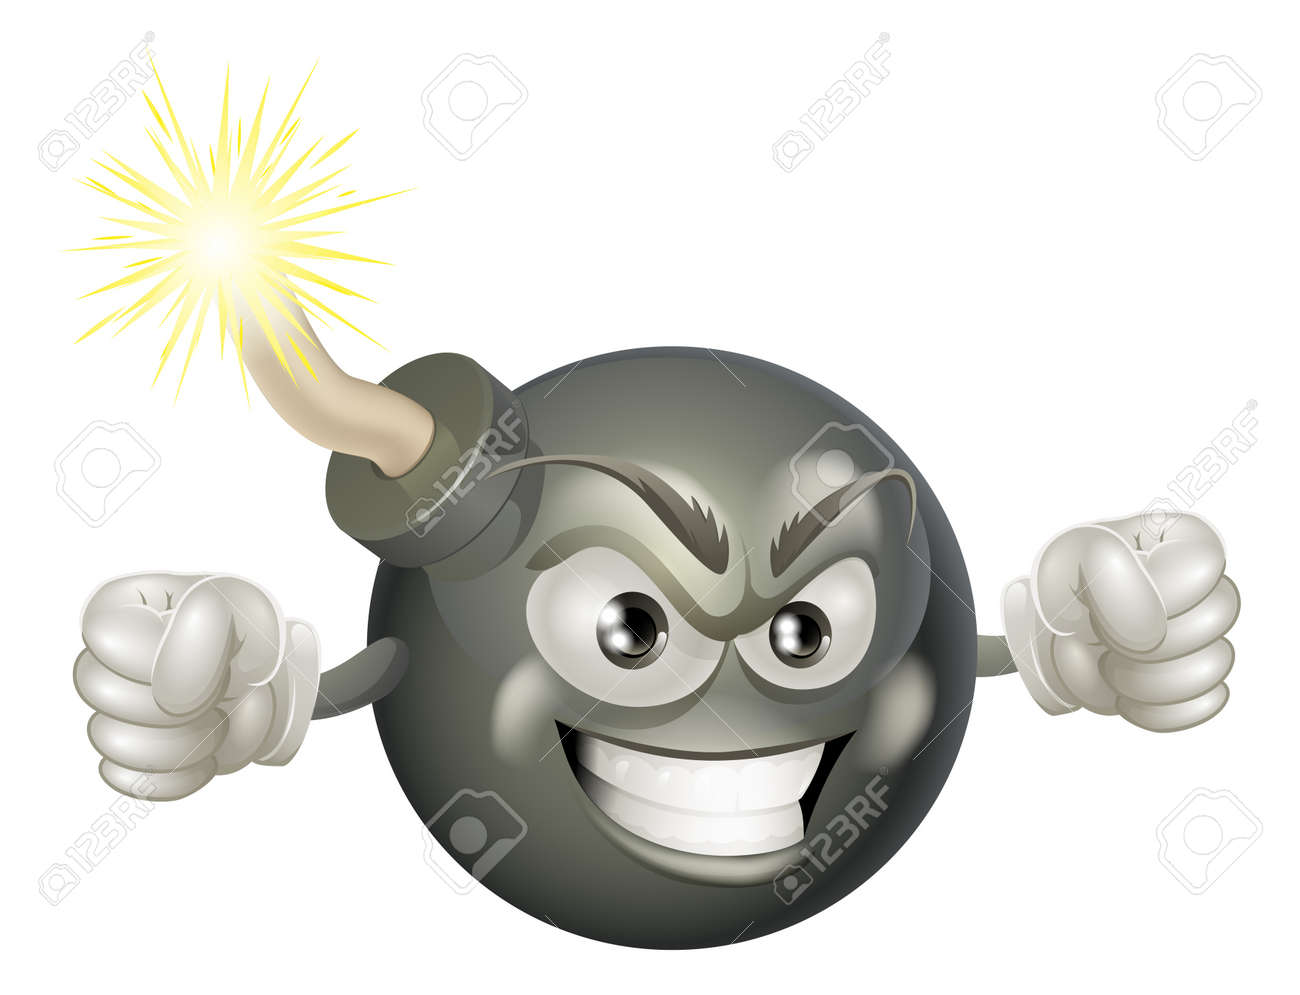 An illustration of mean or angry looking cartoon bomb character with a lit fuse Stock Vector - 19198118